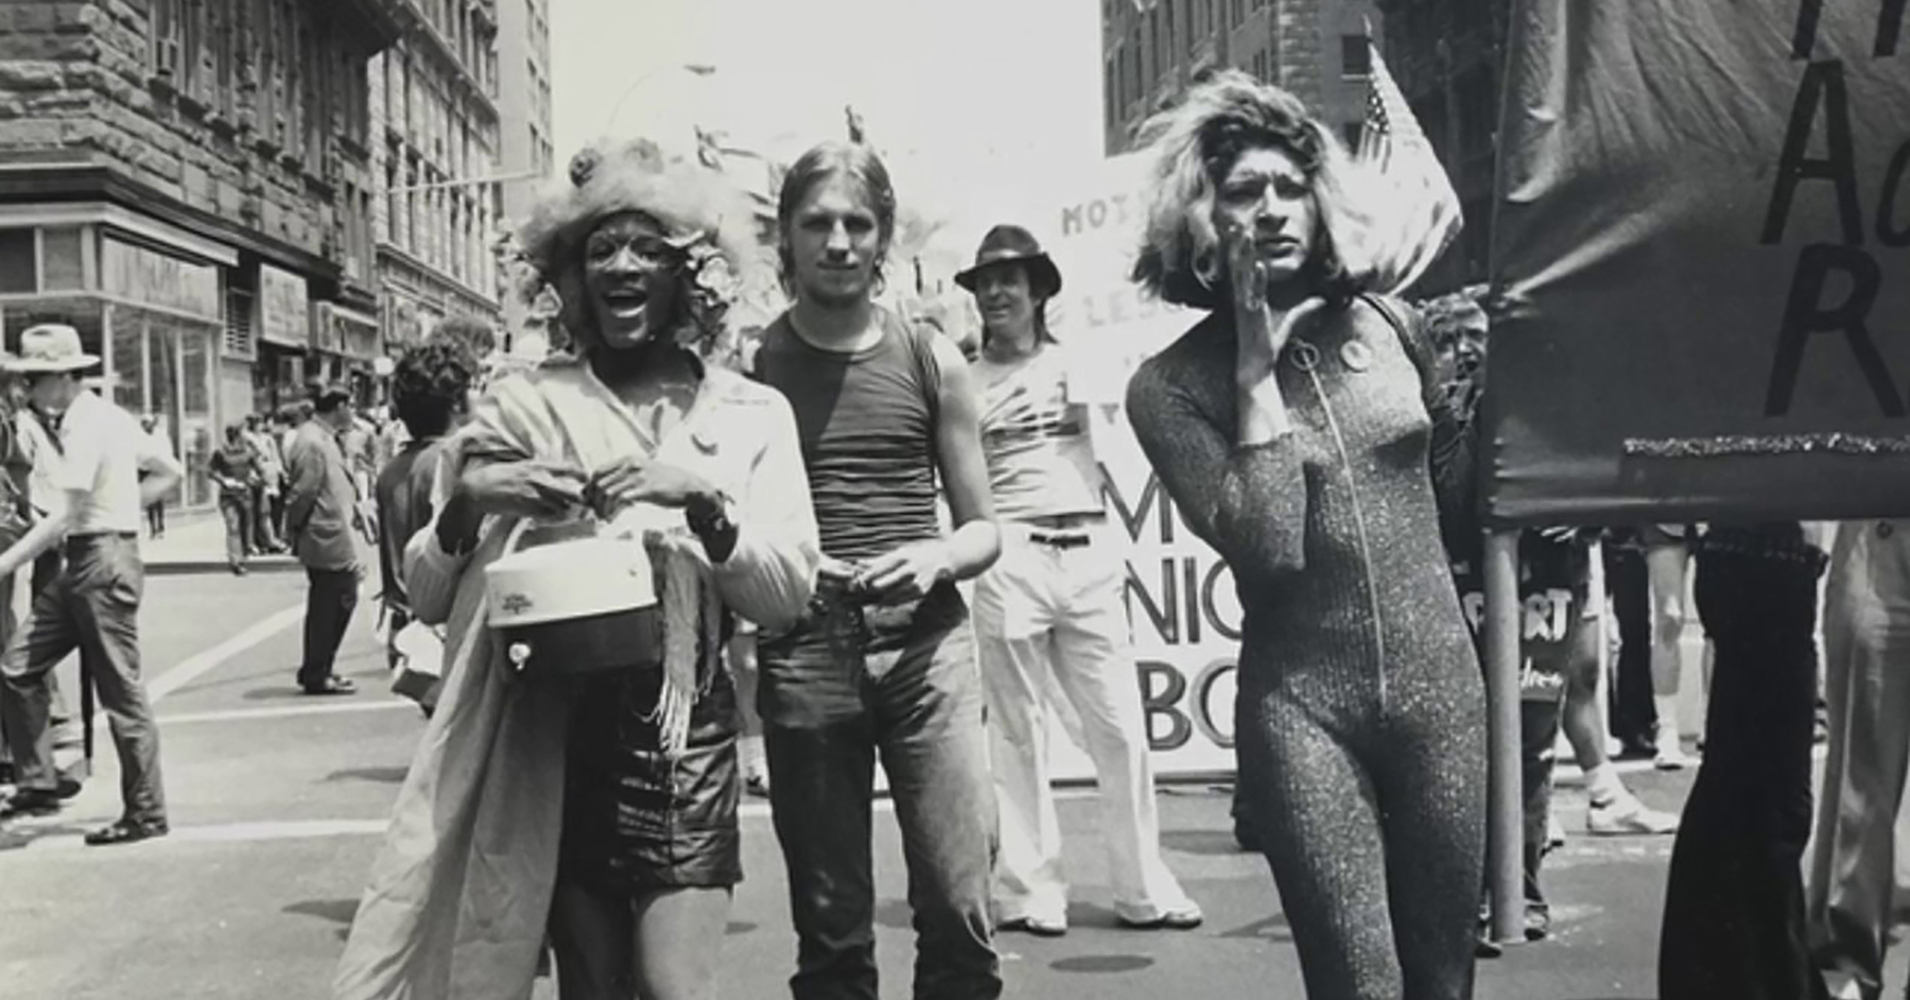 sylvia rivera.jpeg